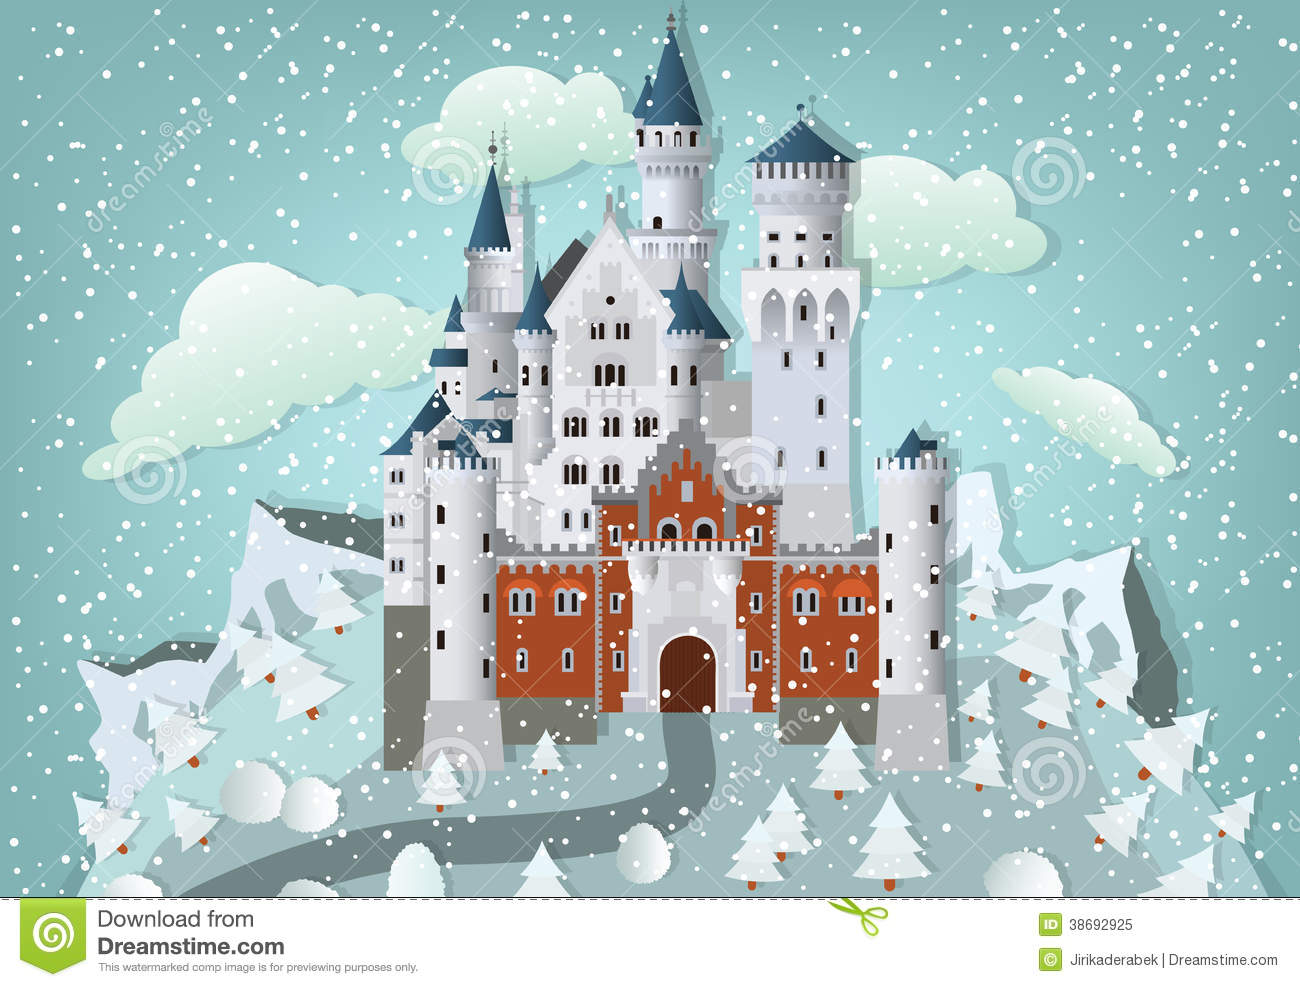 Free Snow Falling Wallpaper Fairytale Castle In Winter Royalty Free Stock Photo